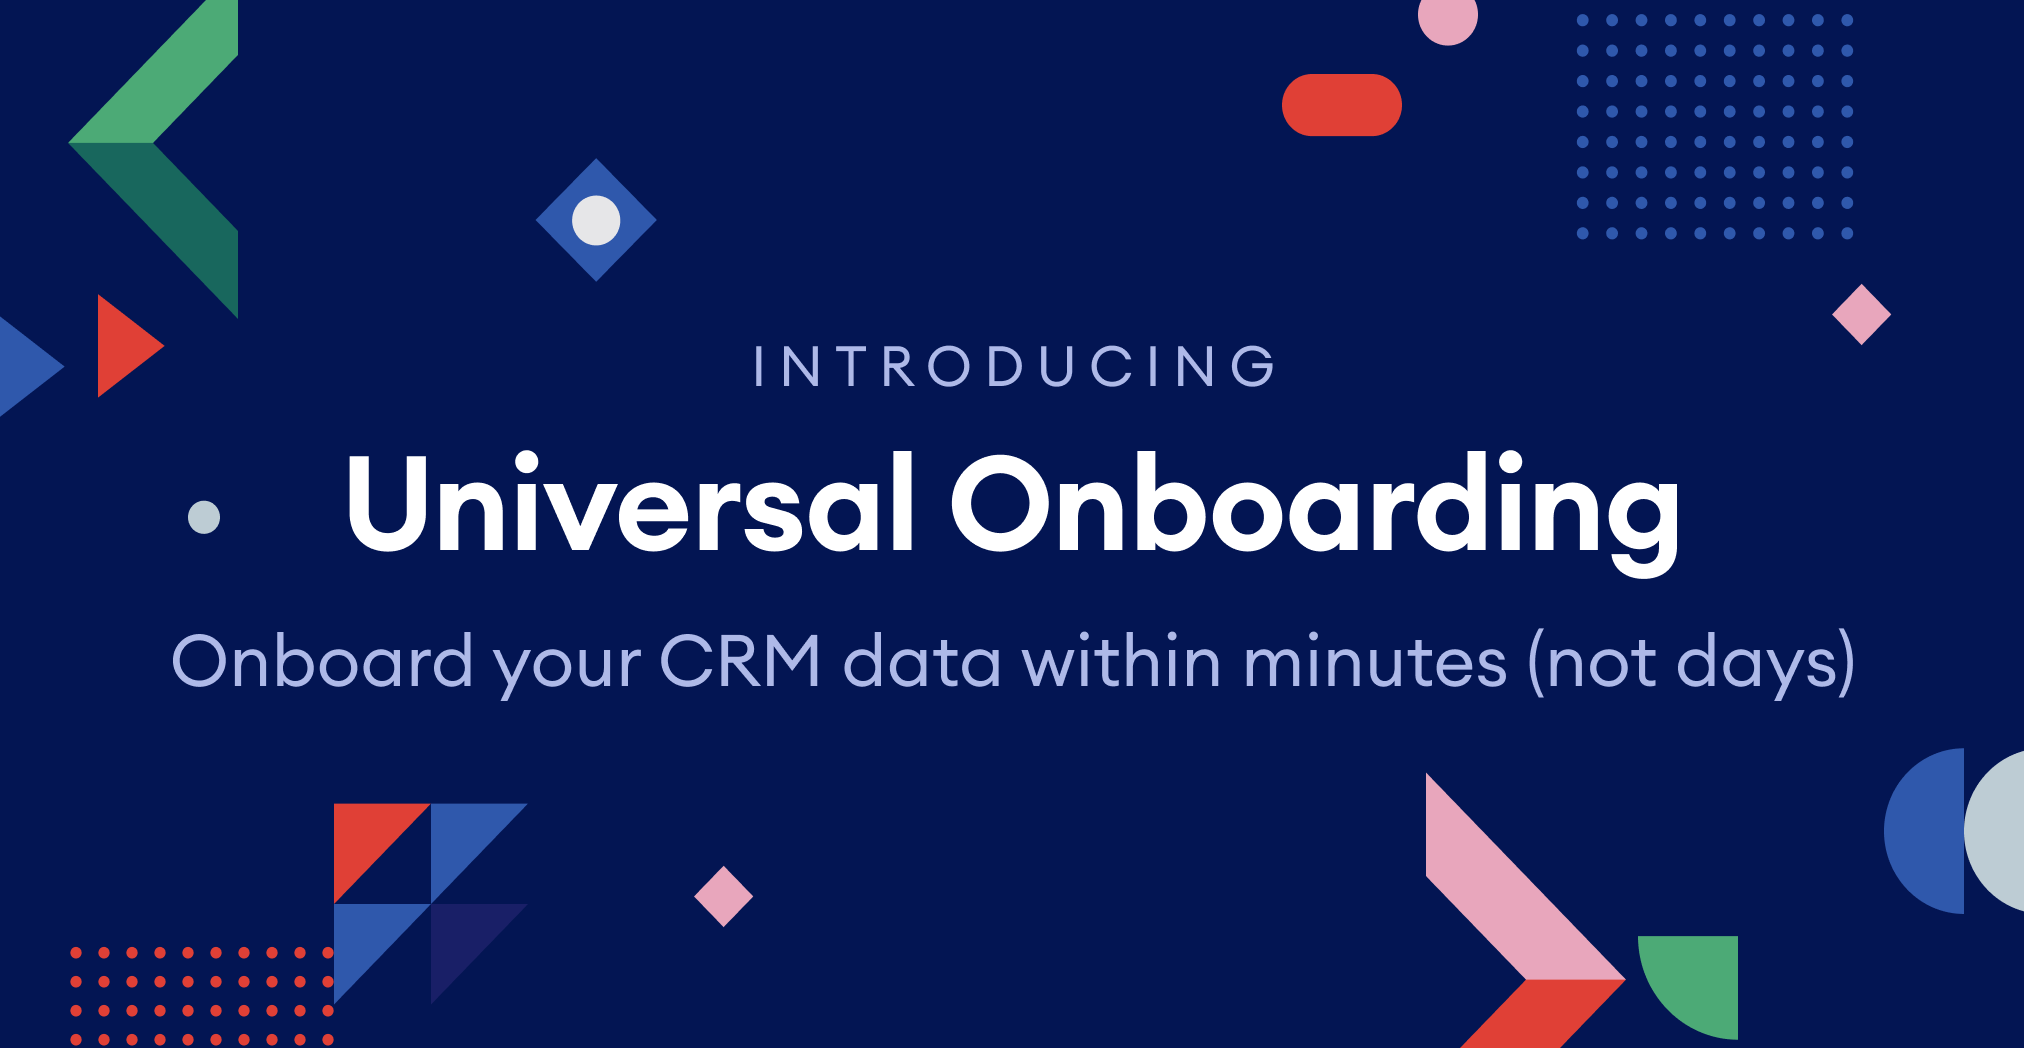 Match your CRM data to digital identifiers in minutes with Universal Onboarding